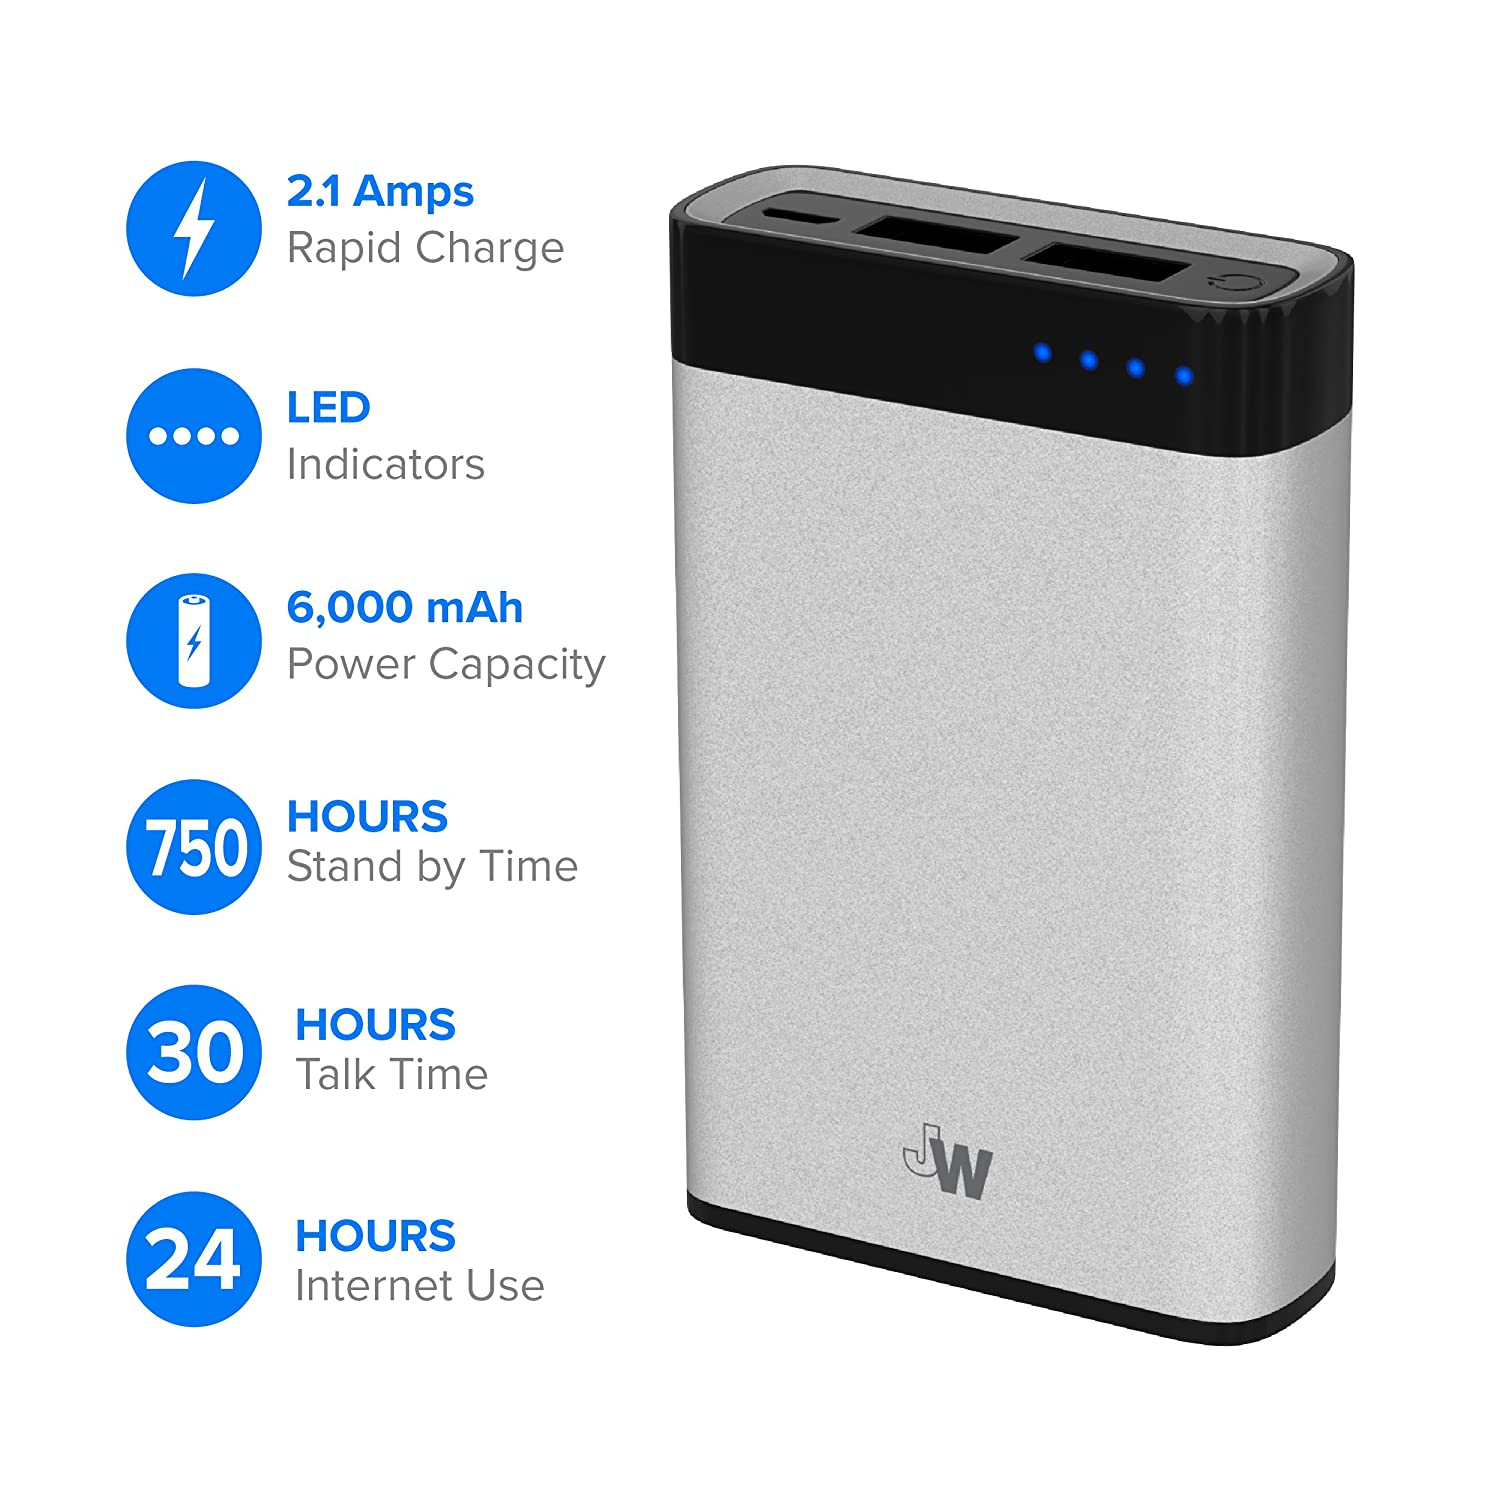 Just Wireless Portable Charger Power Bank External Bestseller Xiaomi Powerbank 10000mah Mi Pro 2 10000 Mah Fast Charging Battery Pack 6000mah Phone For Apple Iphone Including Xs Max Xr X 8 Plus